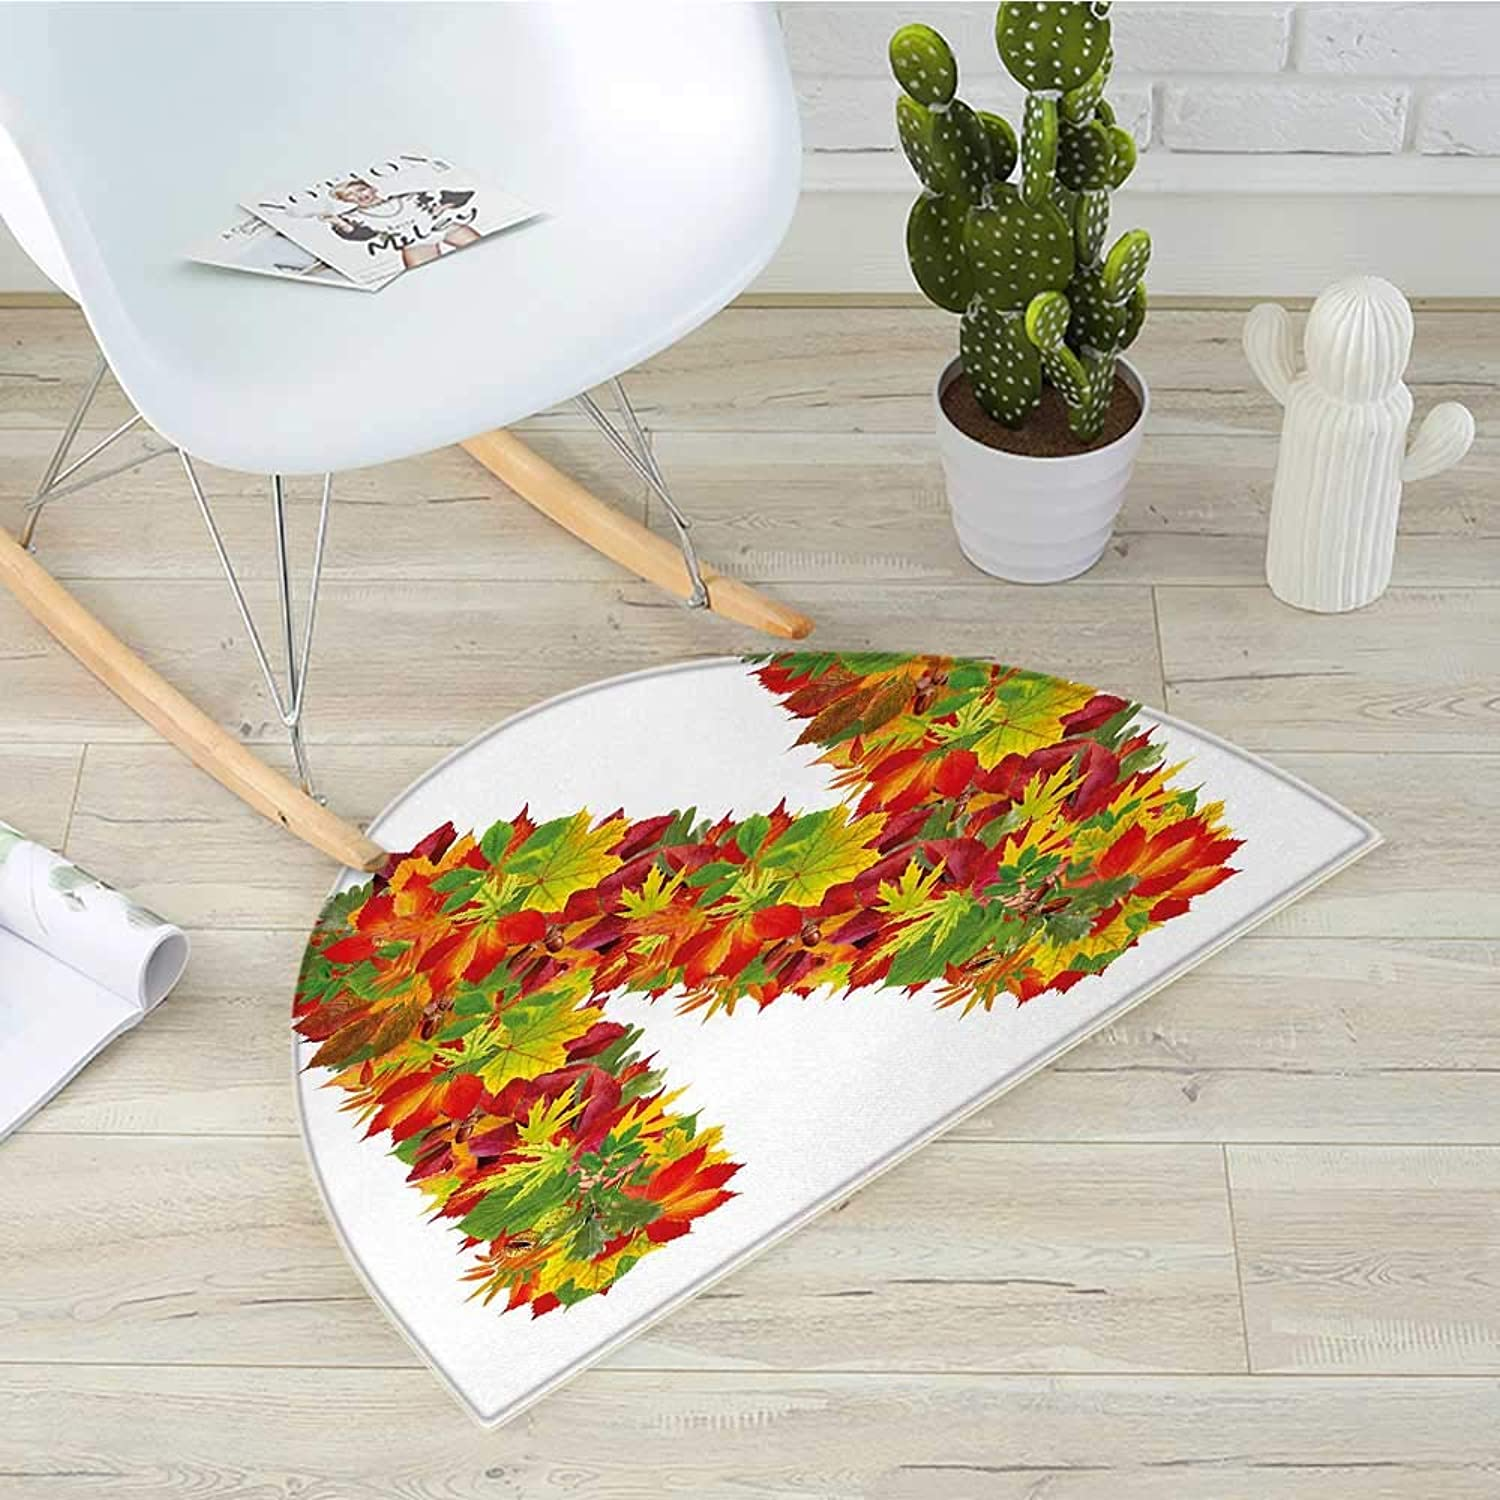 Letter N Semicircular CushionFall Canadian Maple Leaves Shaped Symbolic Writing Sign Flourishing Mother Earth Entry Door Mat H 39.3  xD 59  Multicolor